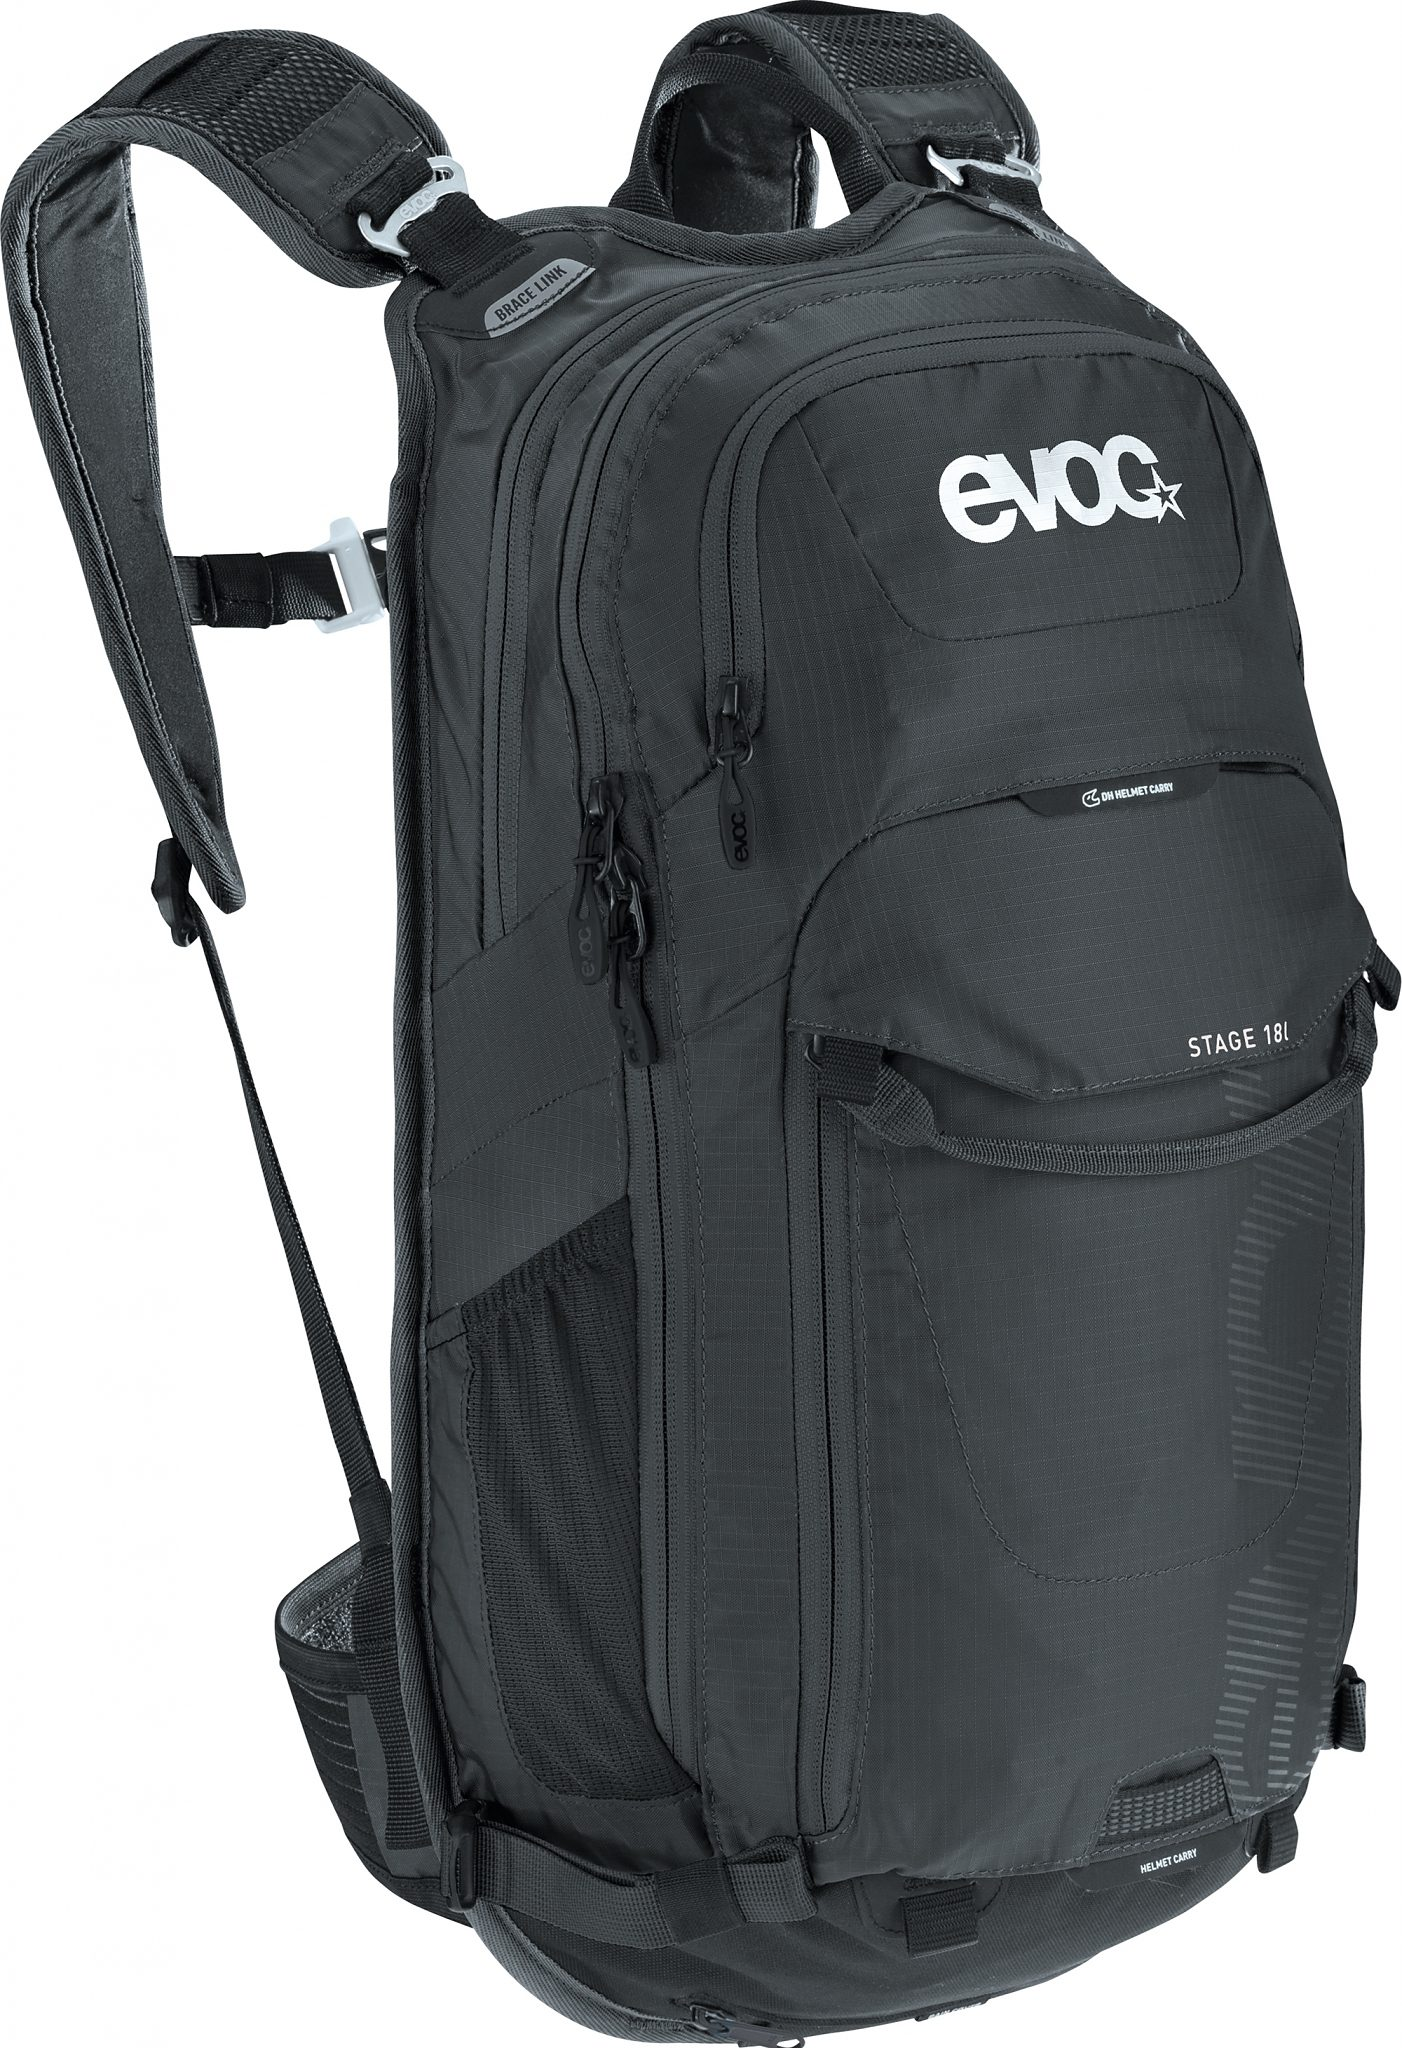 EVOC Rucksack »Stage Backpack 18 L«